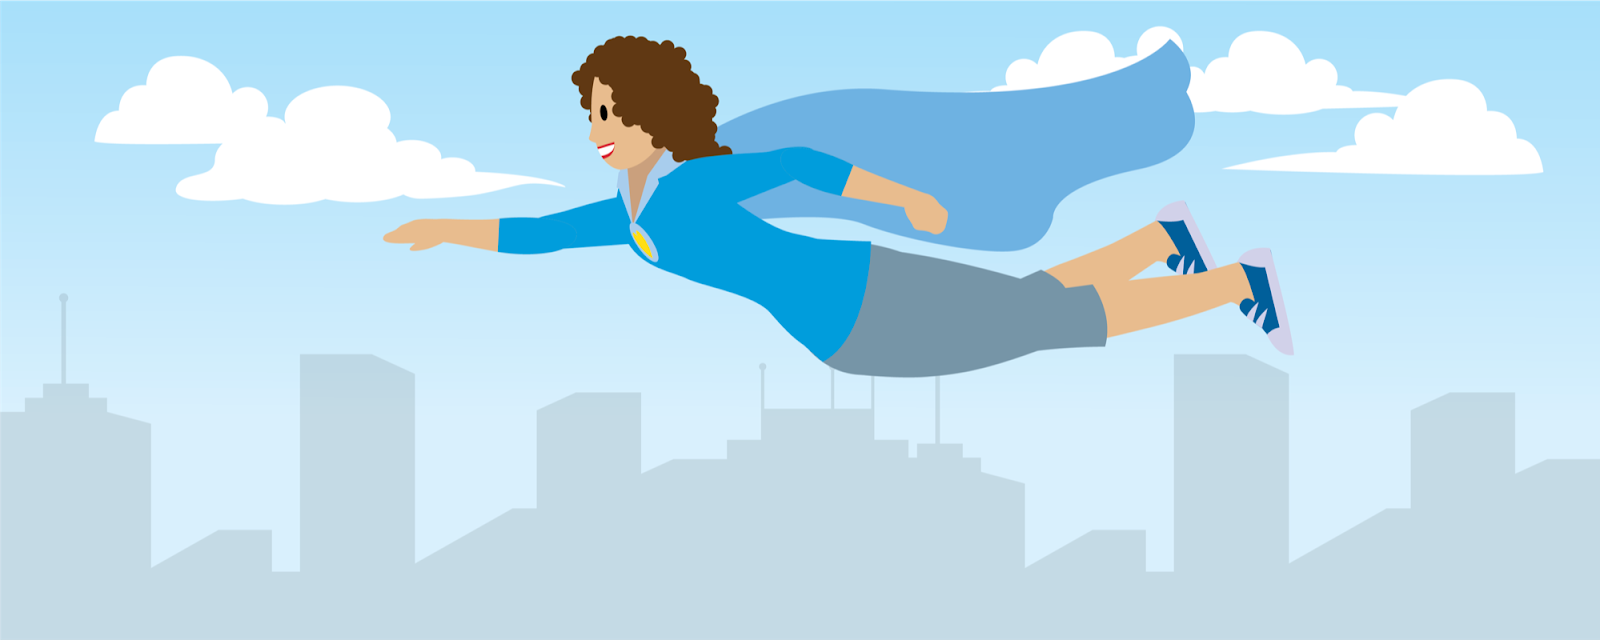 Illustration of a woman wearing a cap flying above a city.